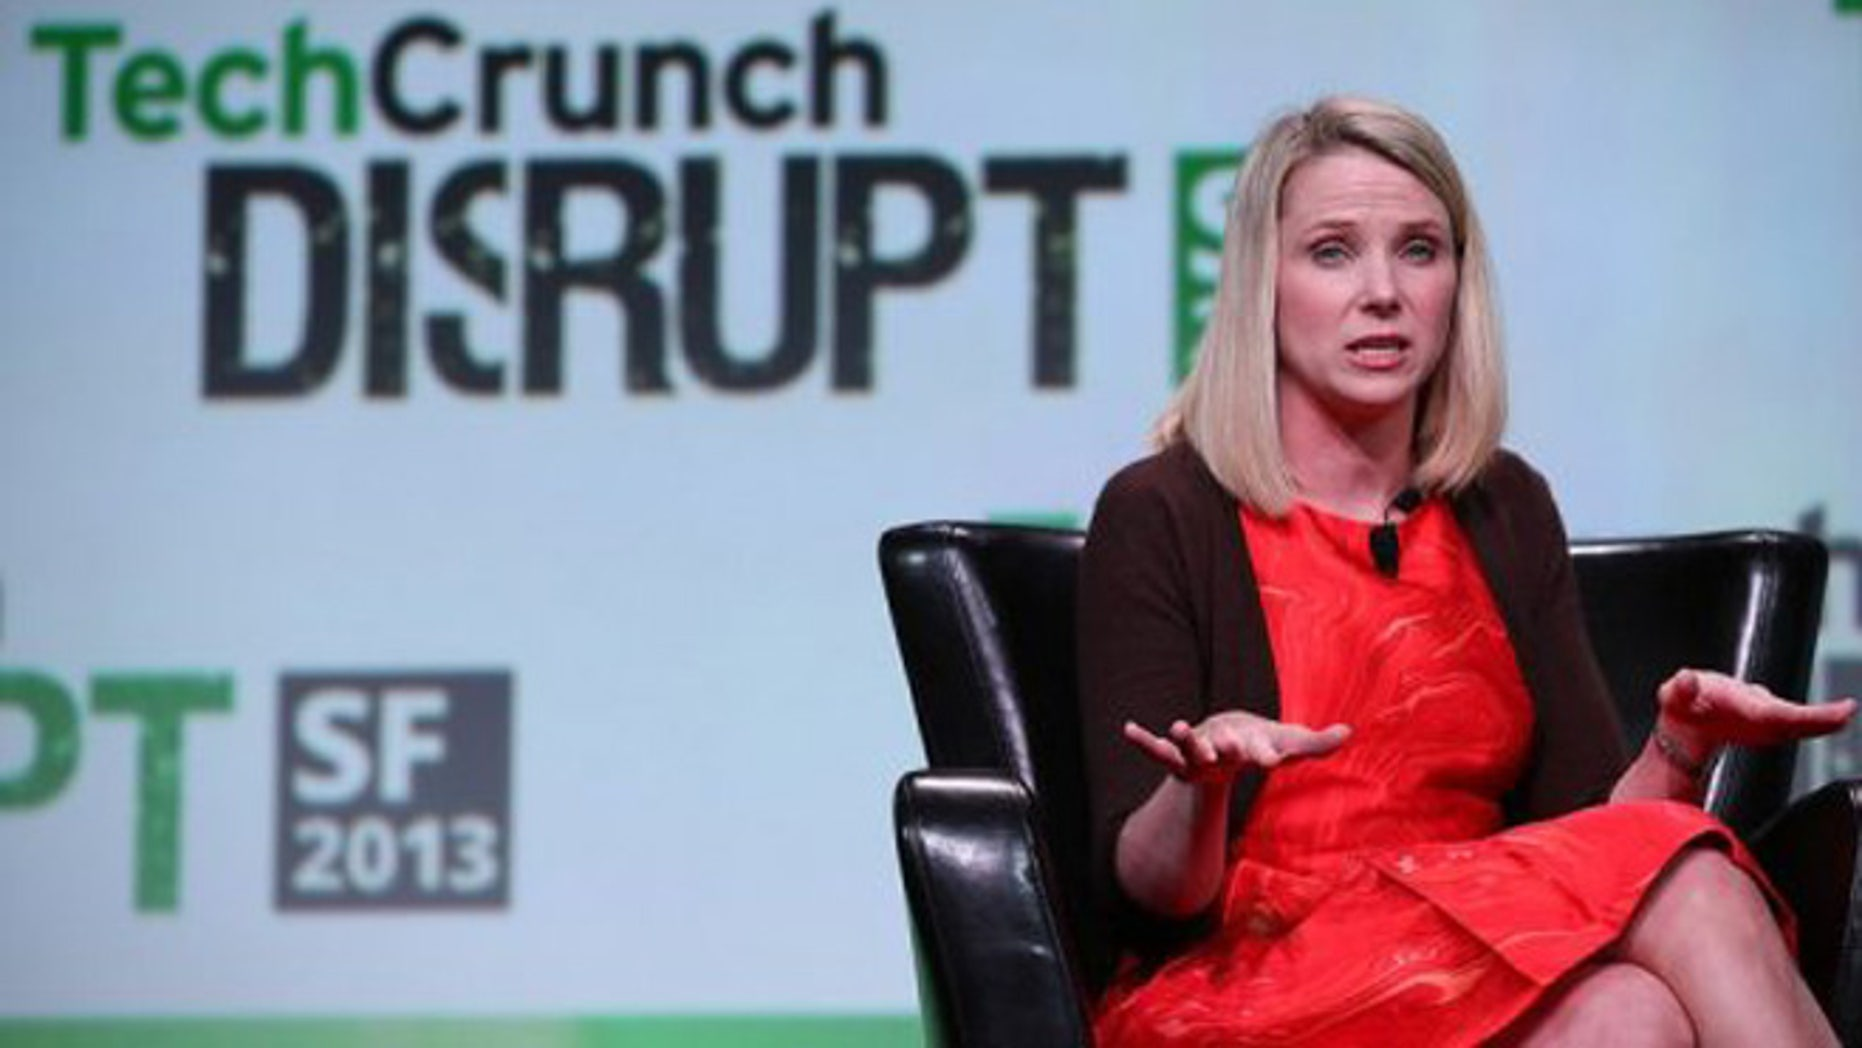 Sept. 11, 2013: Yahoo CEO Marissa Mayer speaks during the 2013 TechCrunch Disrupt conference in San Francisco.